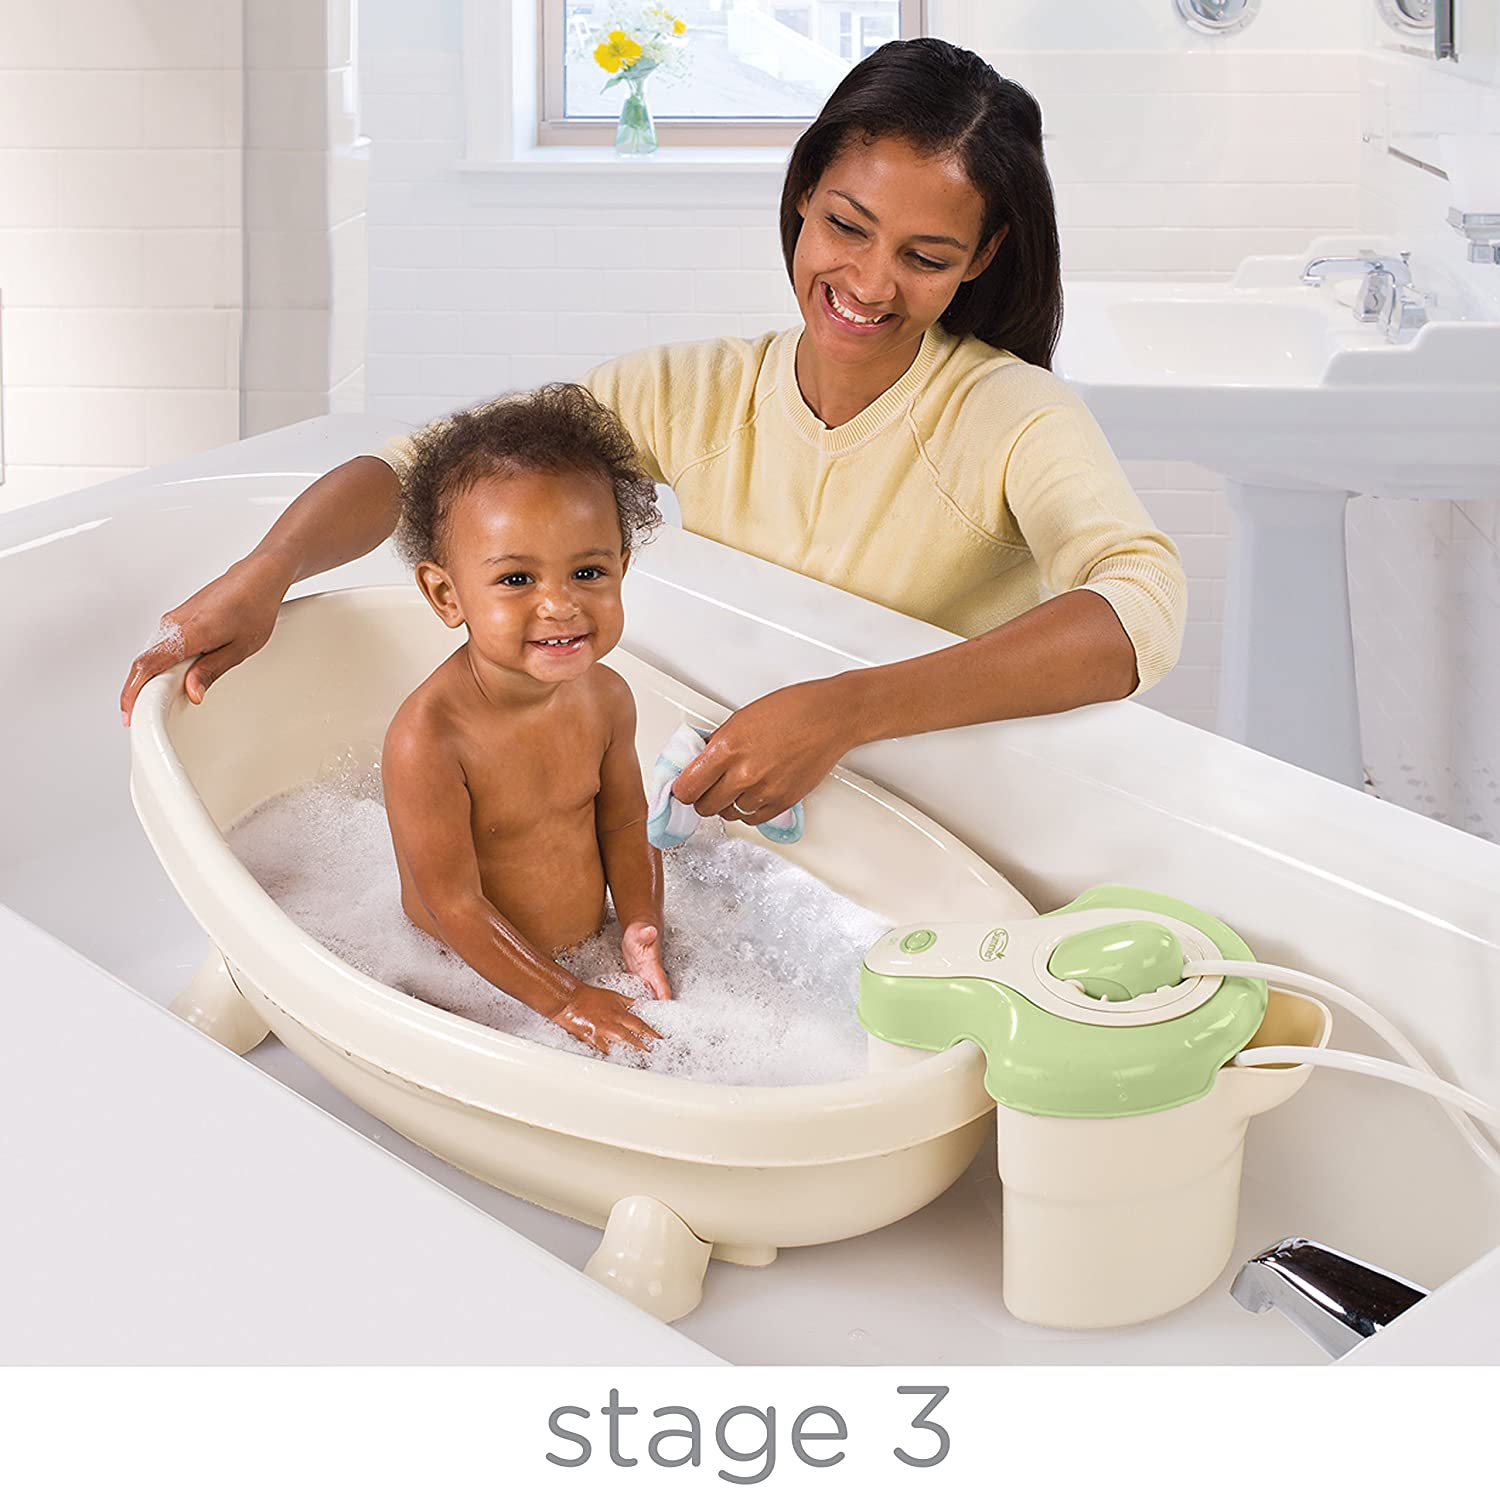 Amazon.com : Summer Infant Soothing Spa and Shower Baby Bath : Baby ...